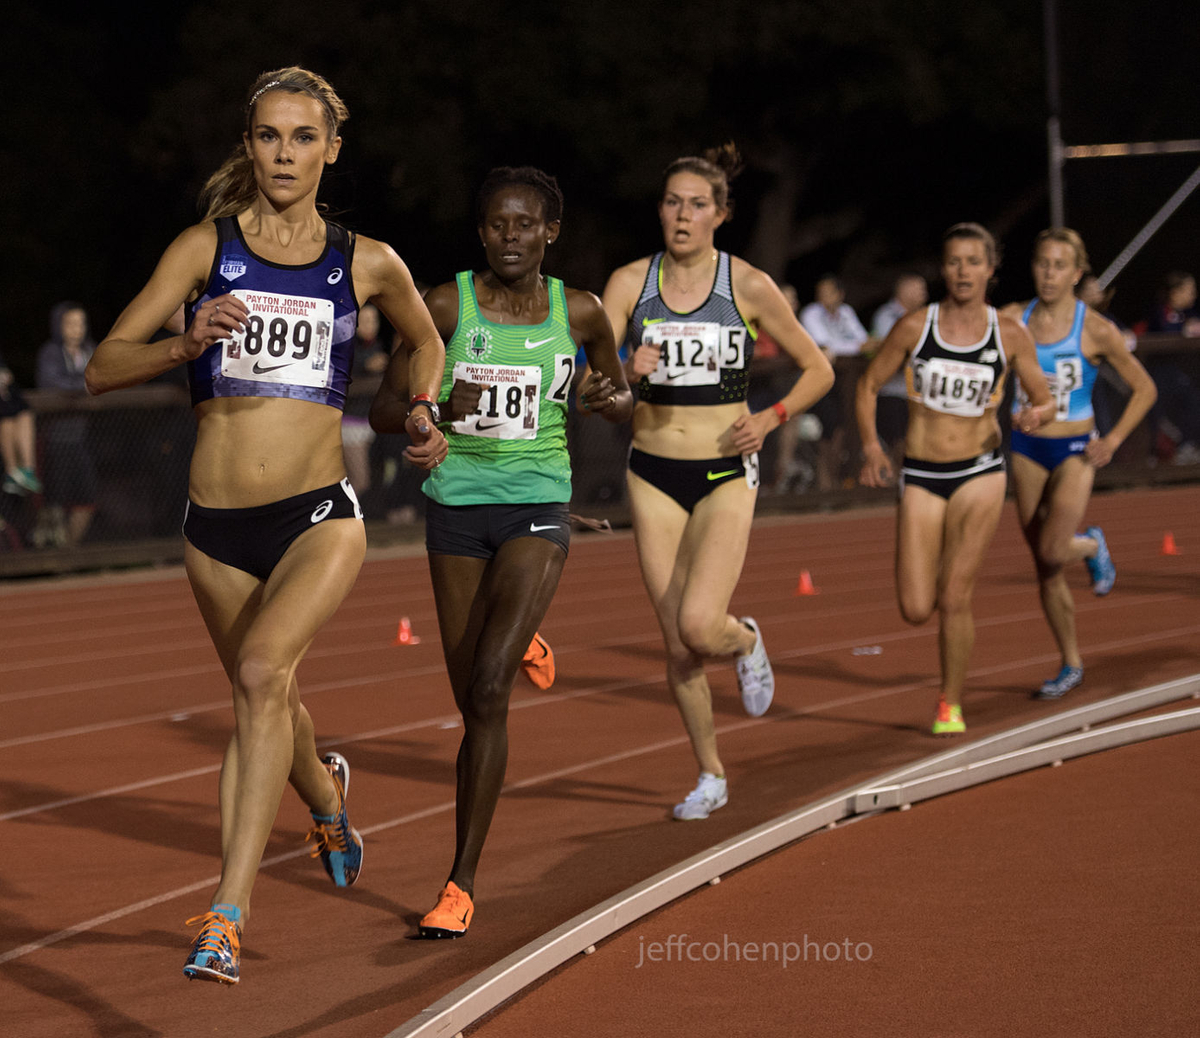 1payton_jordan_meet_heidi_see_kipyego_5_1_16__jeff_cohen_photo_30_web.jpg